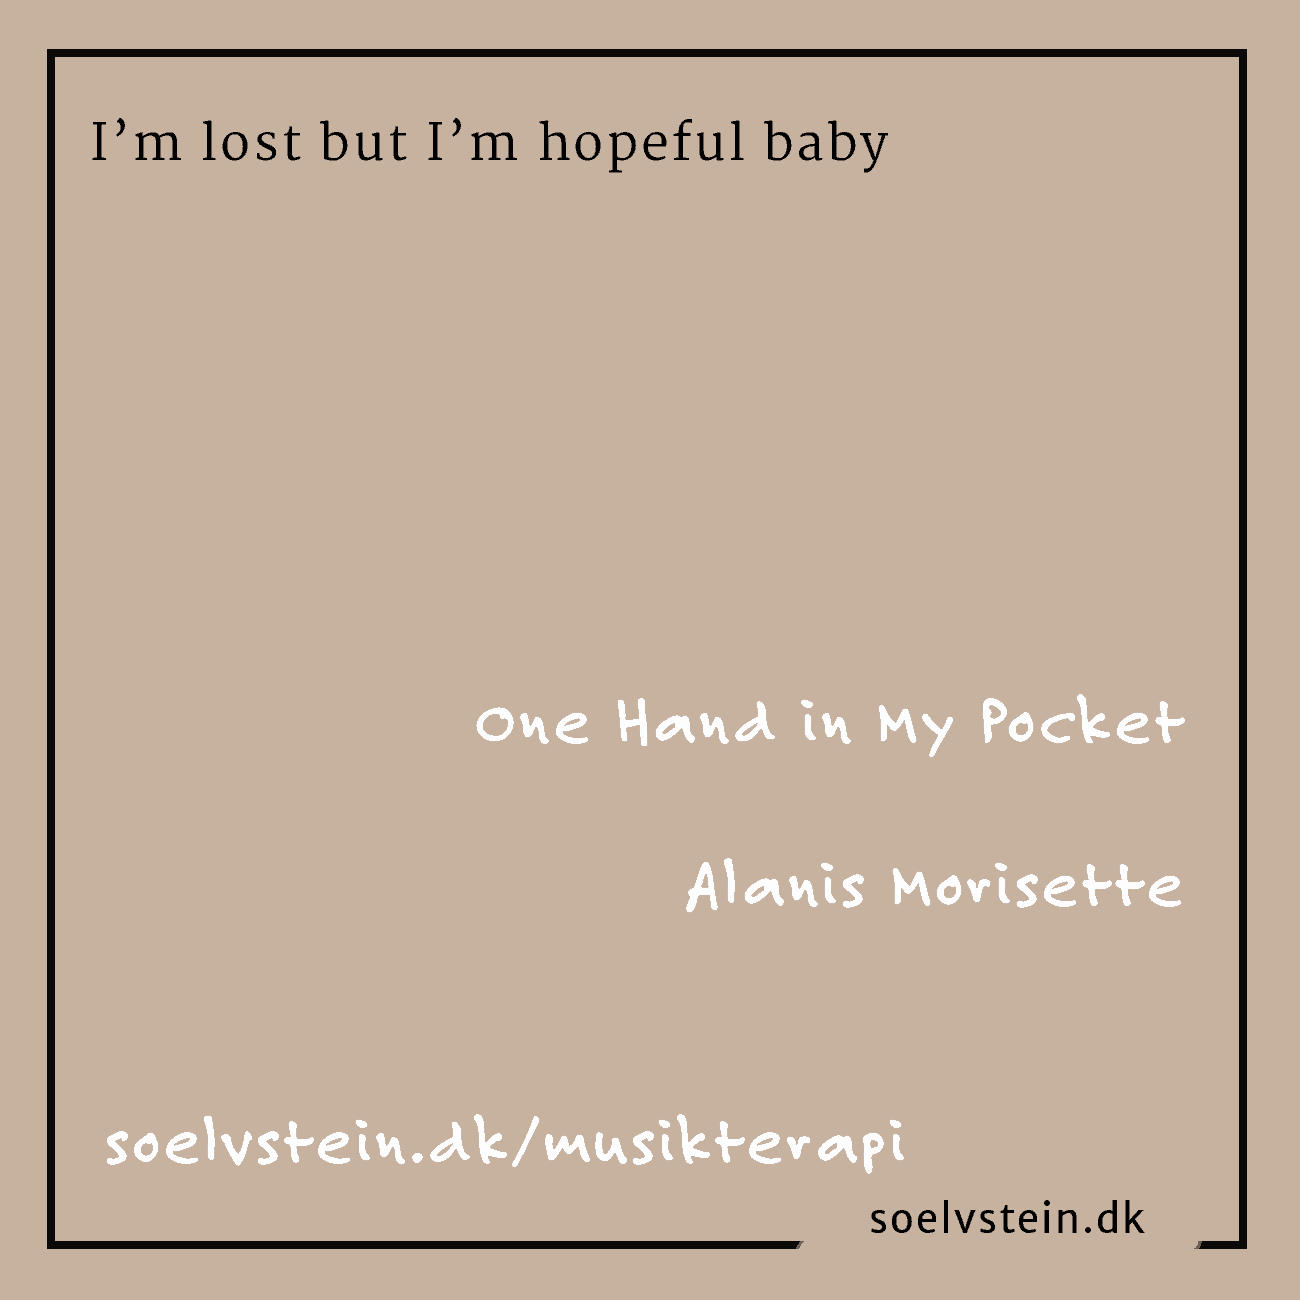 One Hand in My Pocket. Alanis Morisettes